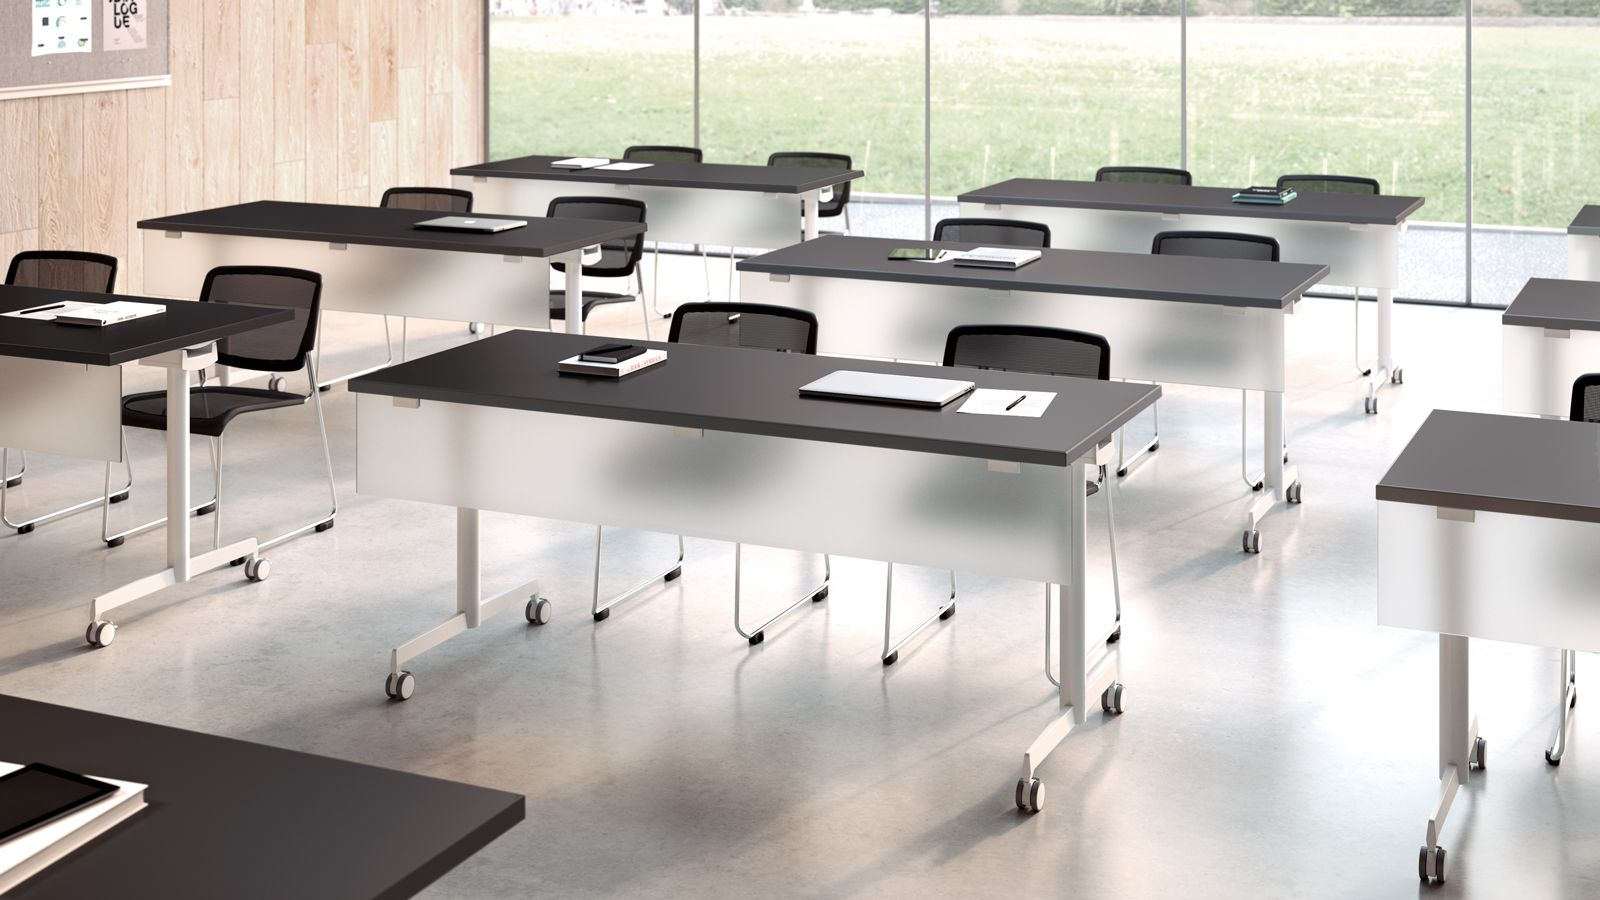 Kimball Bedroom Furniture Kimball Office Dock Training Tables Shown With Poly Chairs